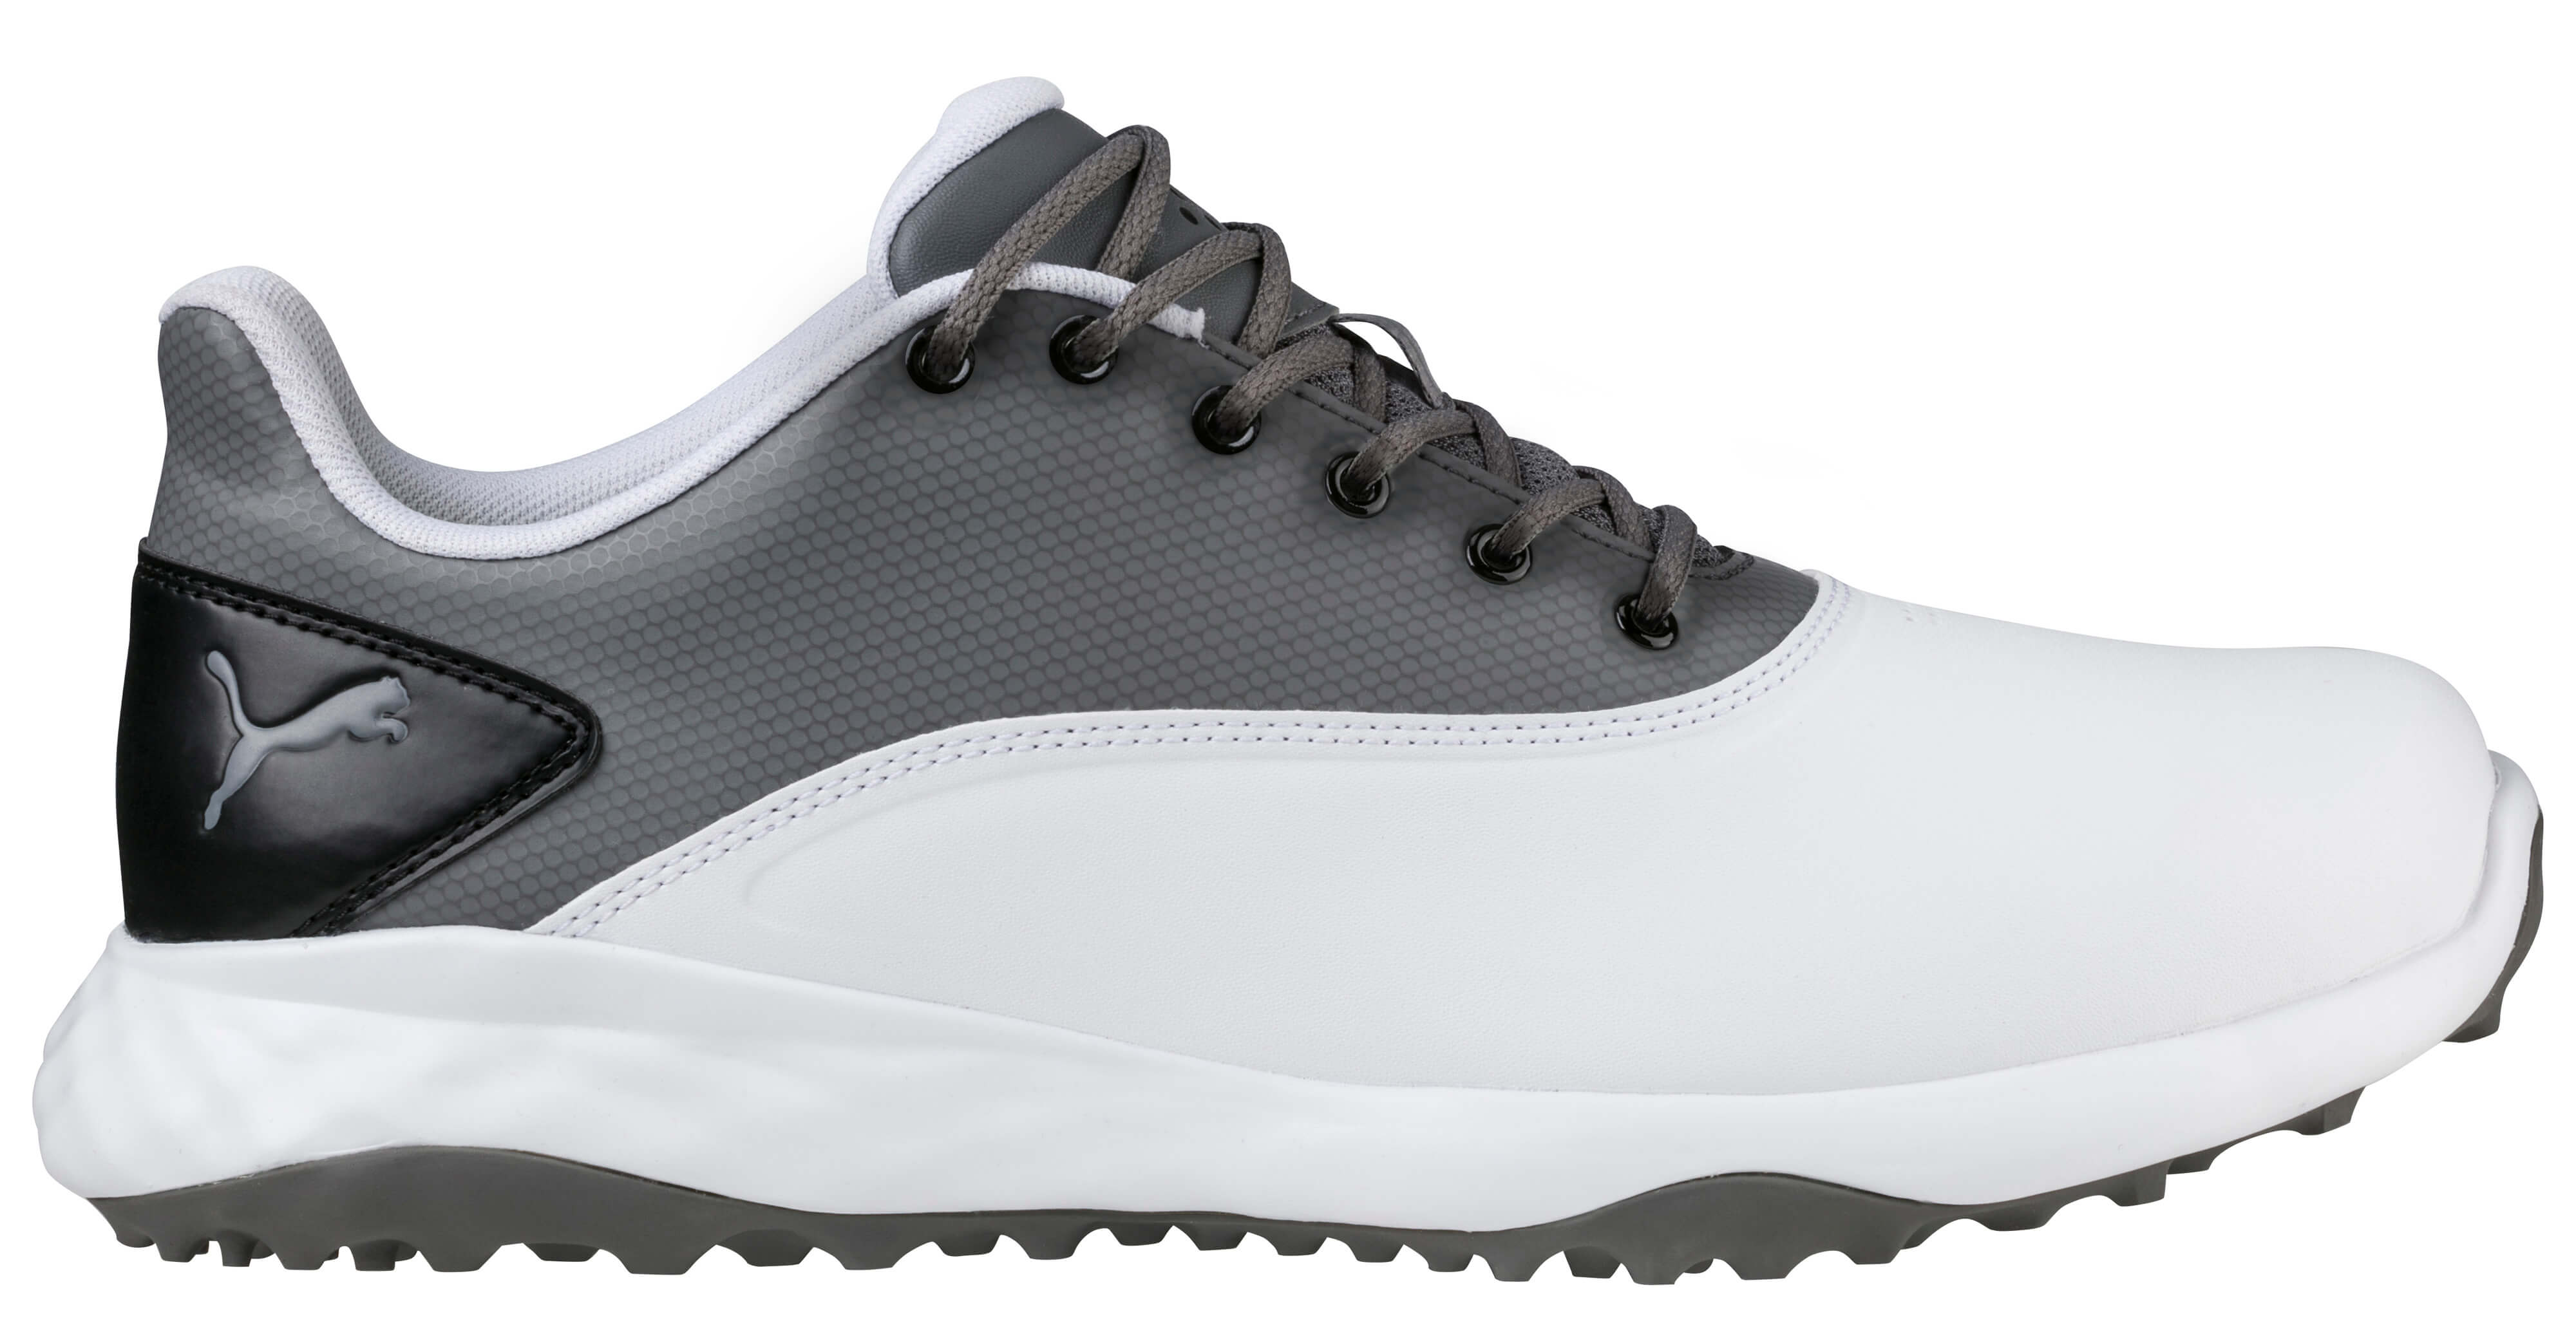 87cb4c03a1a6 Puma Grip Fusion Golf Shoes 2018 Men s Spikeless 189425 New- Choose Color    Size